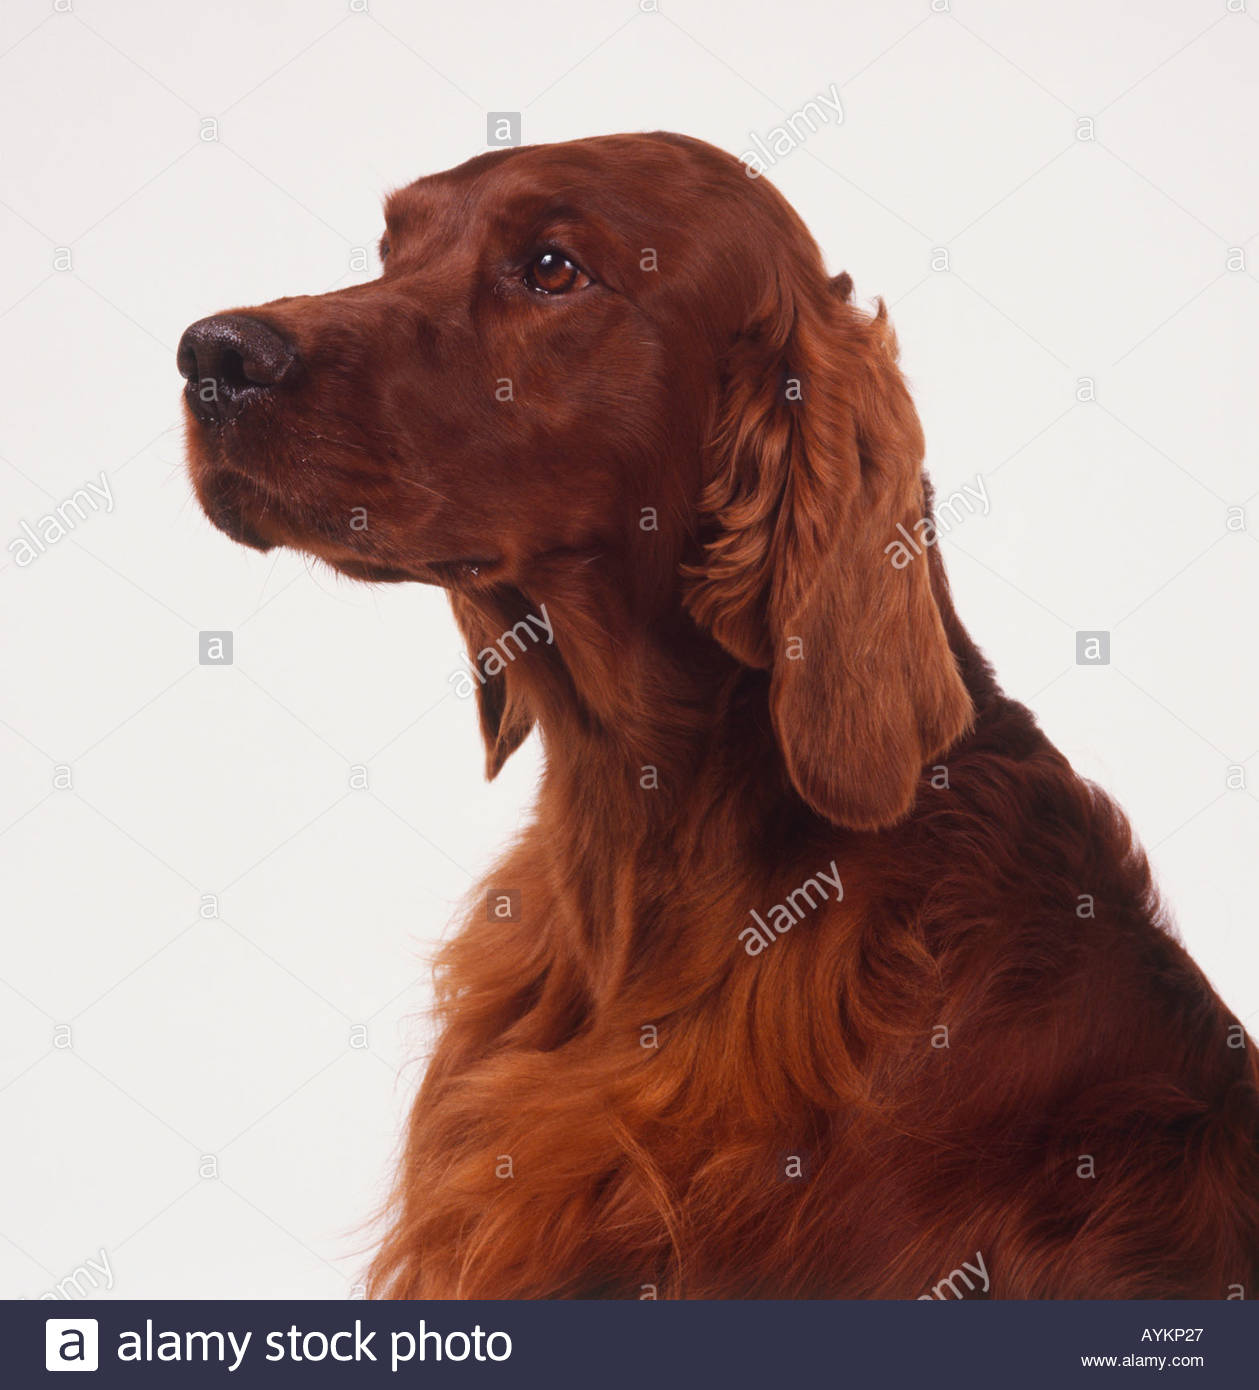 Side view of an Irish Setter's head. - Stock Image